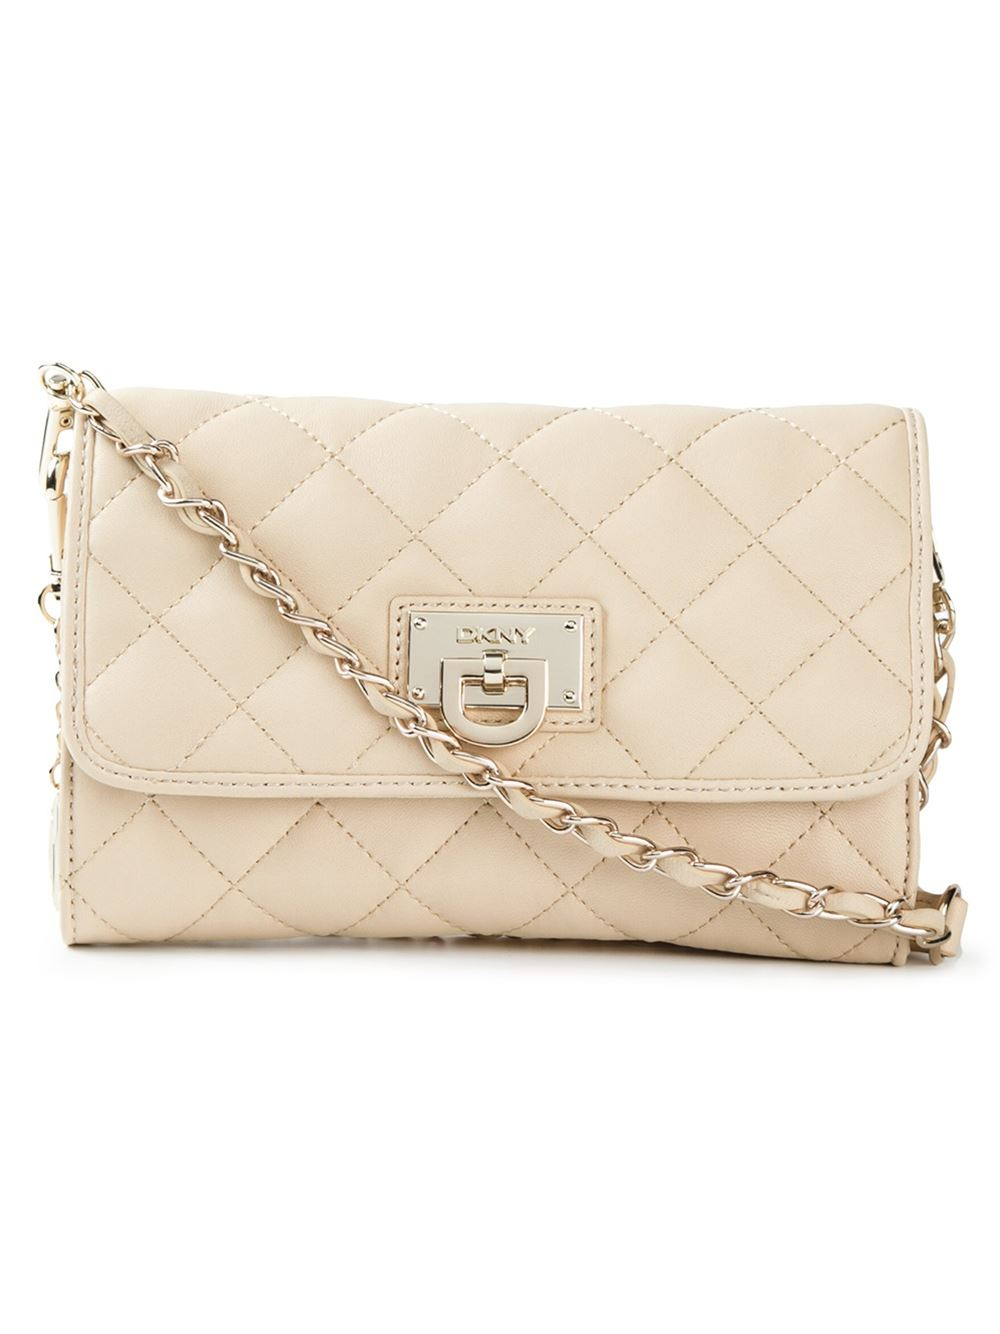 14c027cee3b DKNY Quilted Crossbody Bag in Natural - Lyst